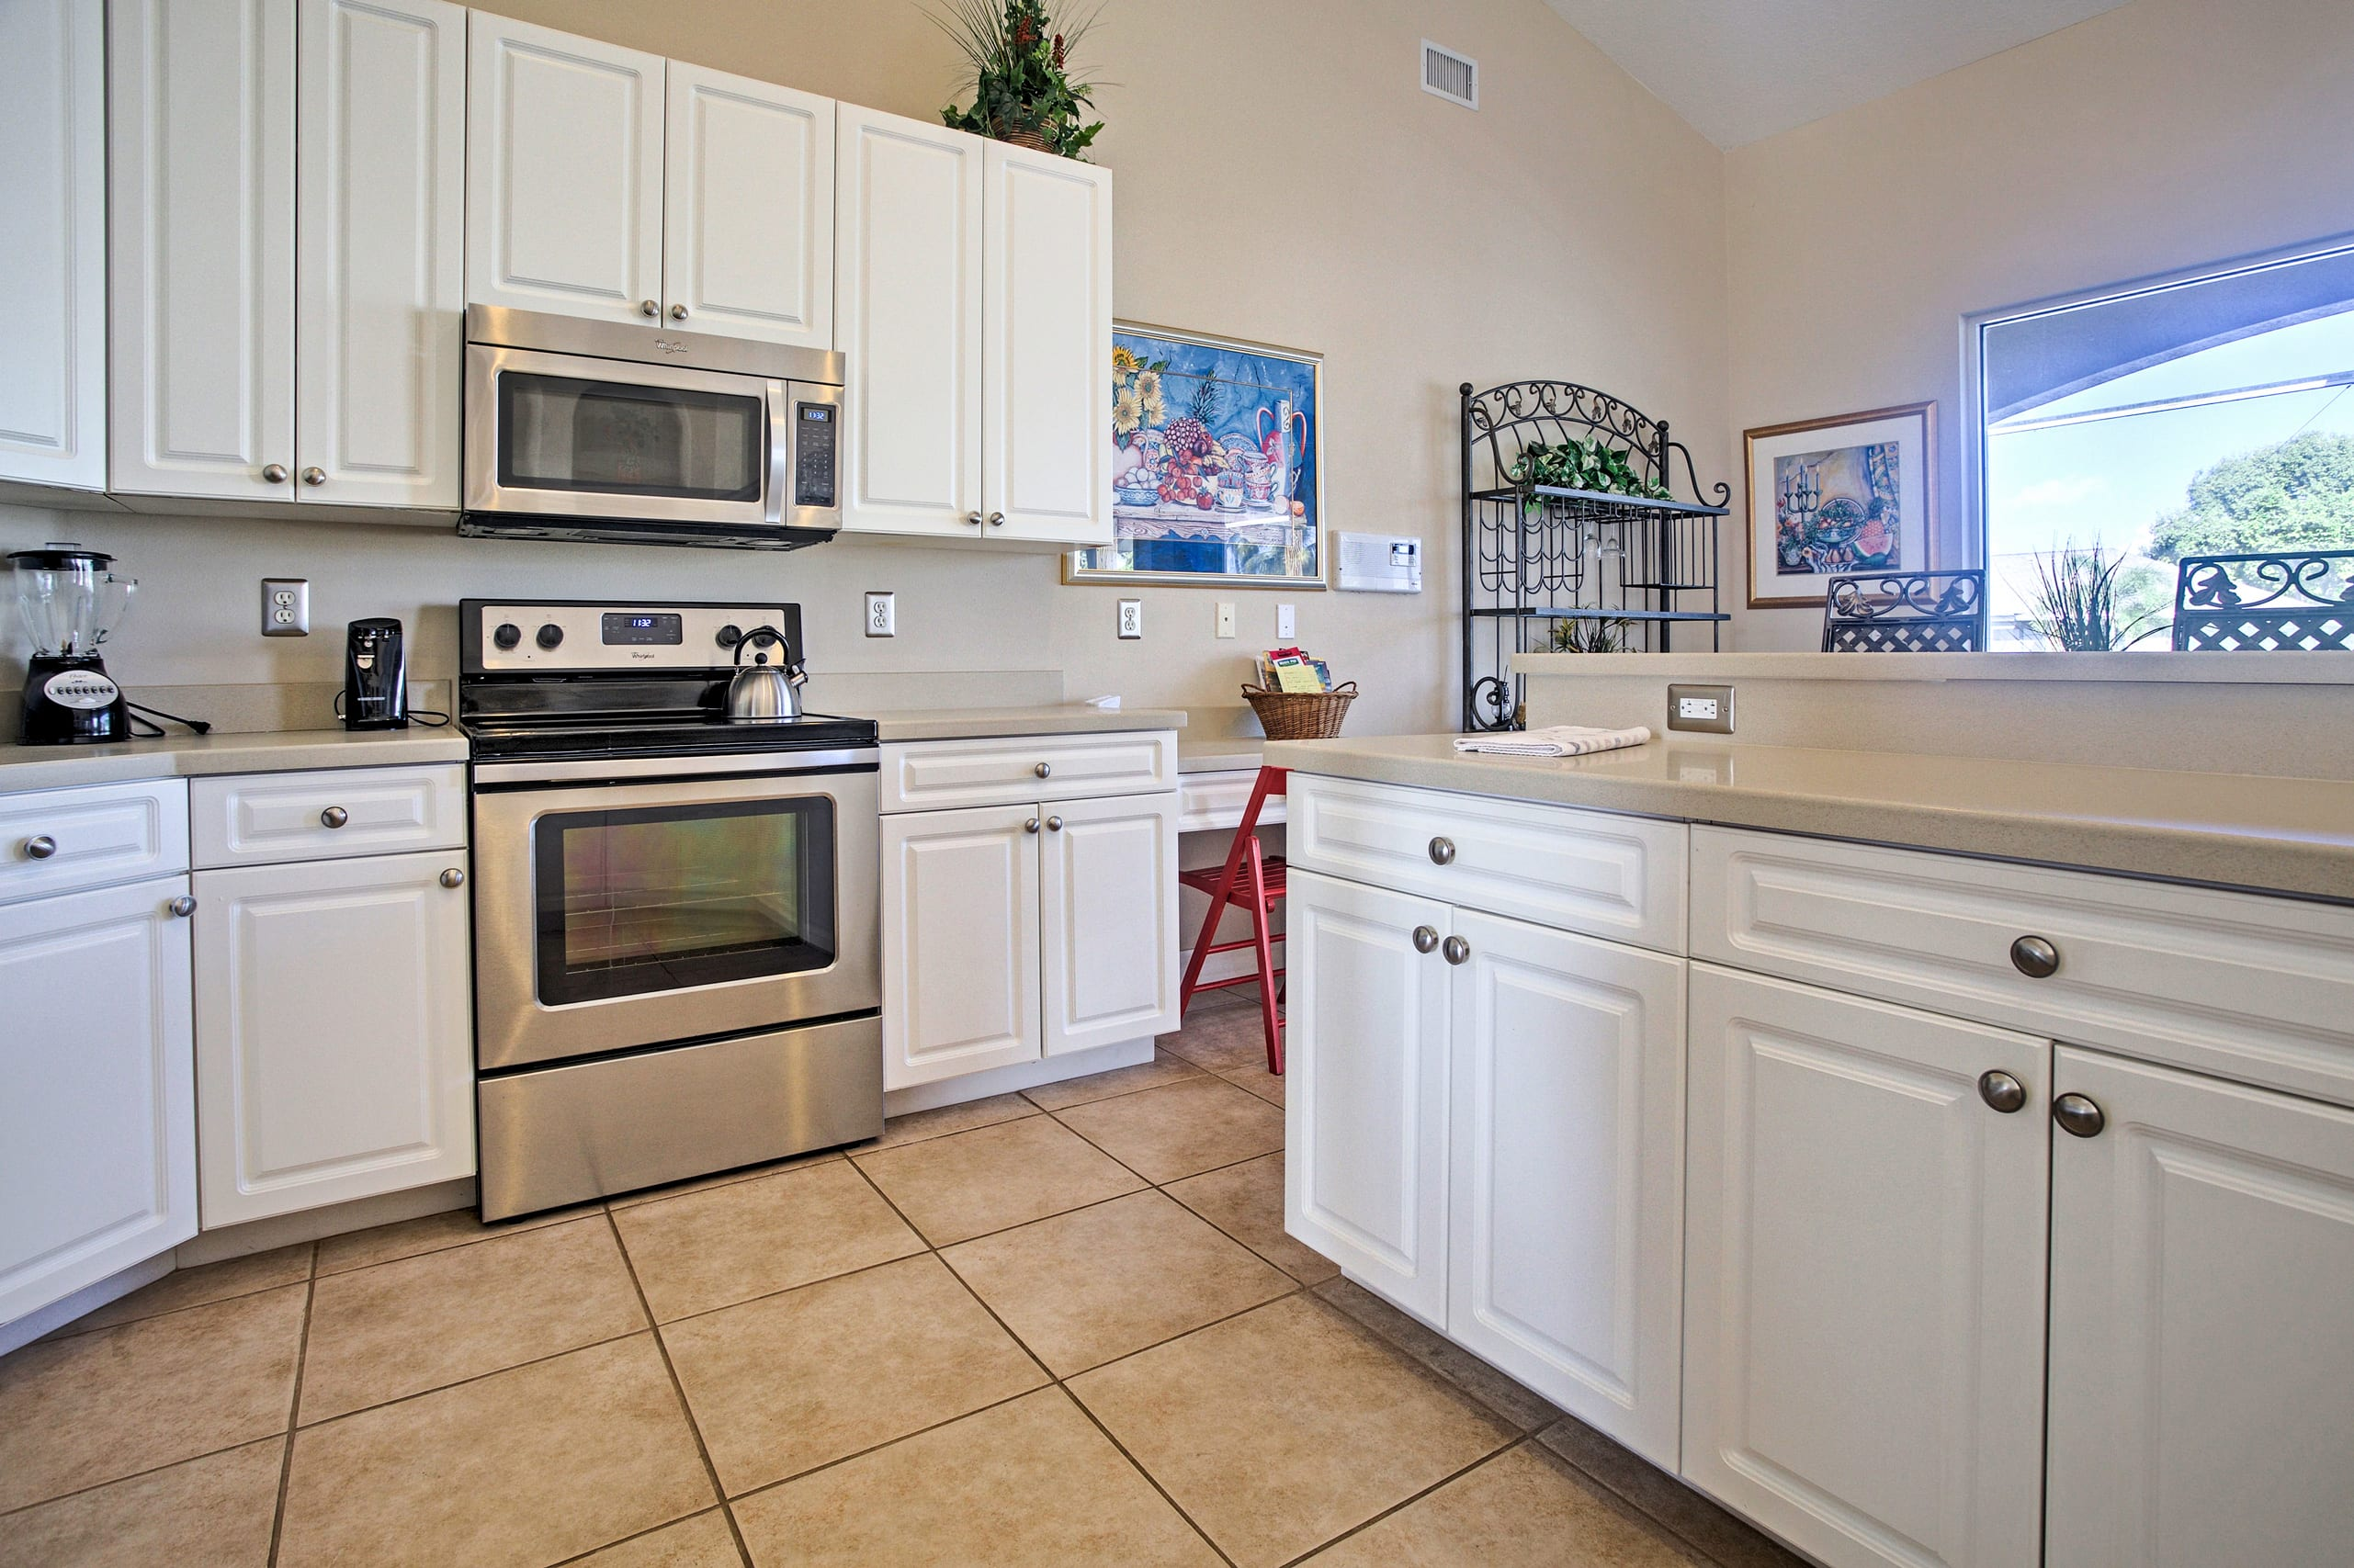 You'll love this fully equipped kitchen with lots of counter space.